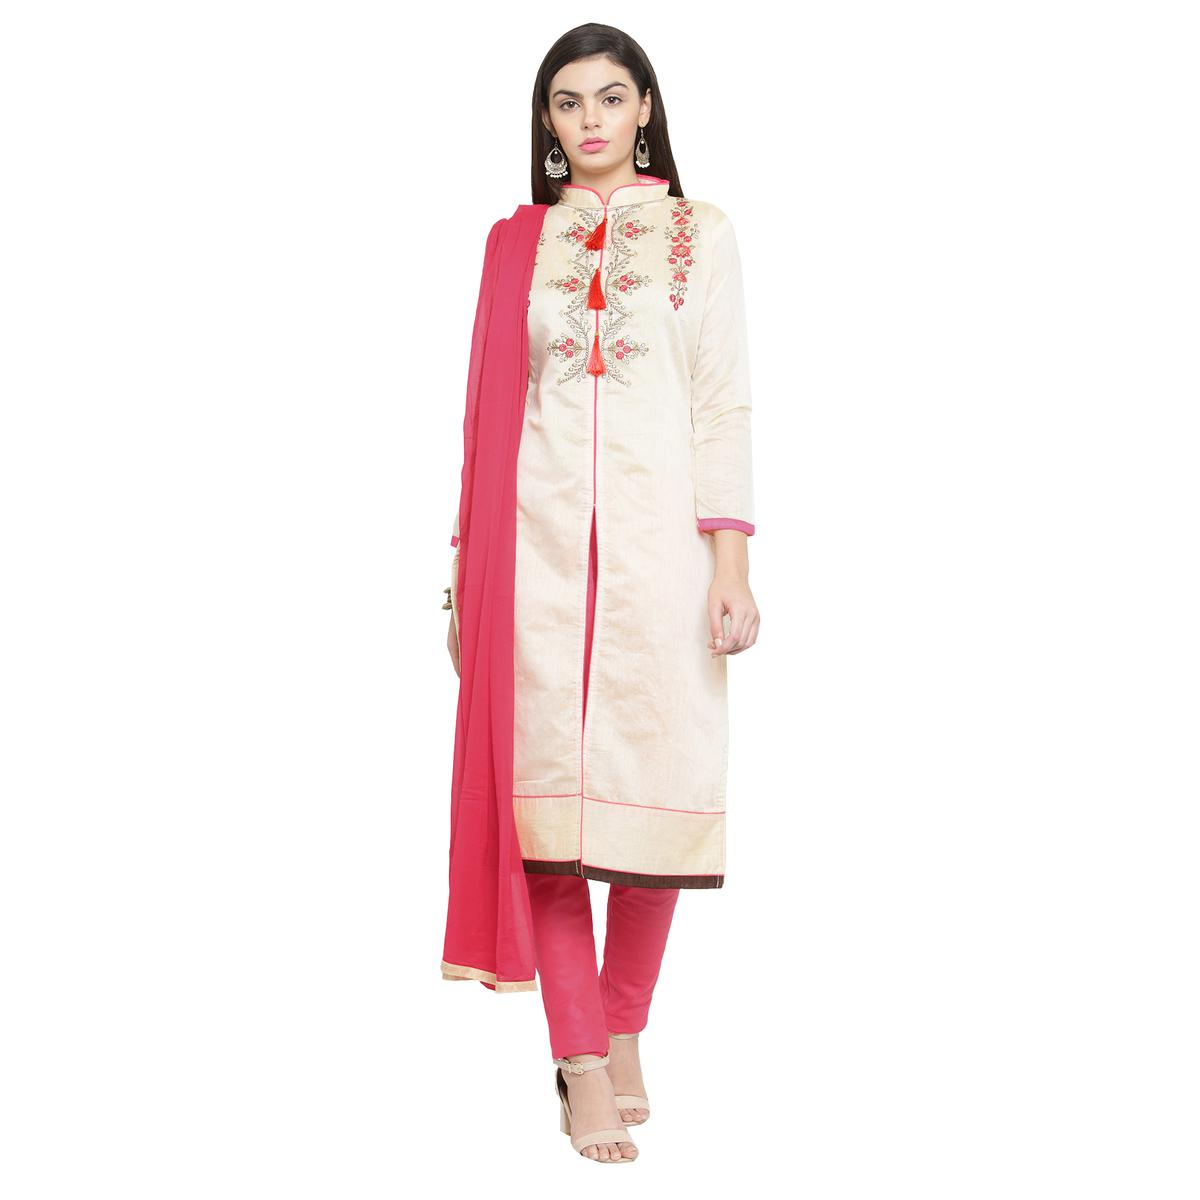 4ebe7aba2d Buy Glowing Off-White Colored Casual Embroidered Chanderi Silk Dress  Material for womens online India, Best Prices, Reviews - Peachmode